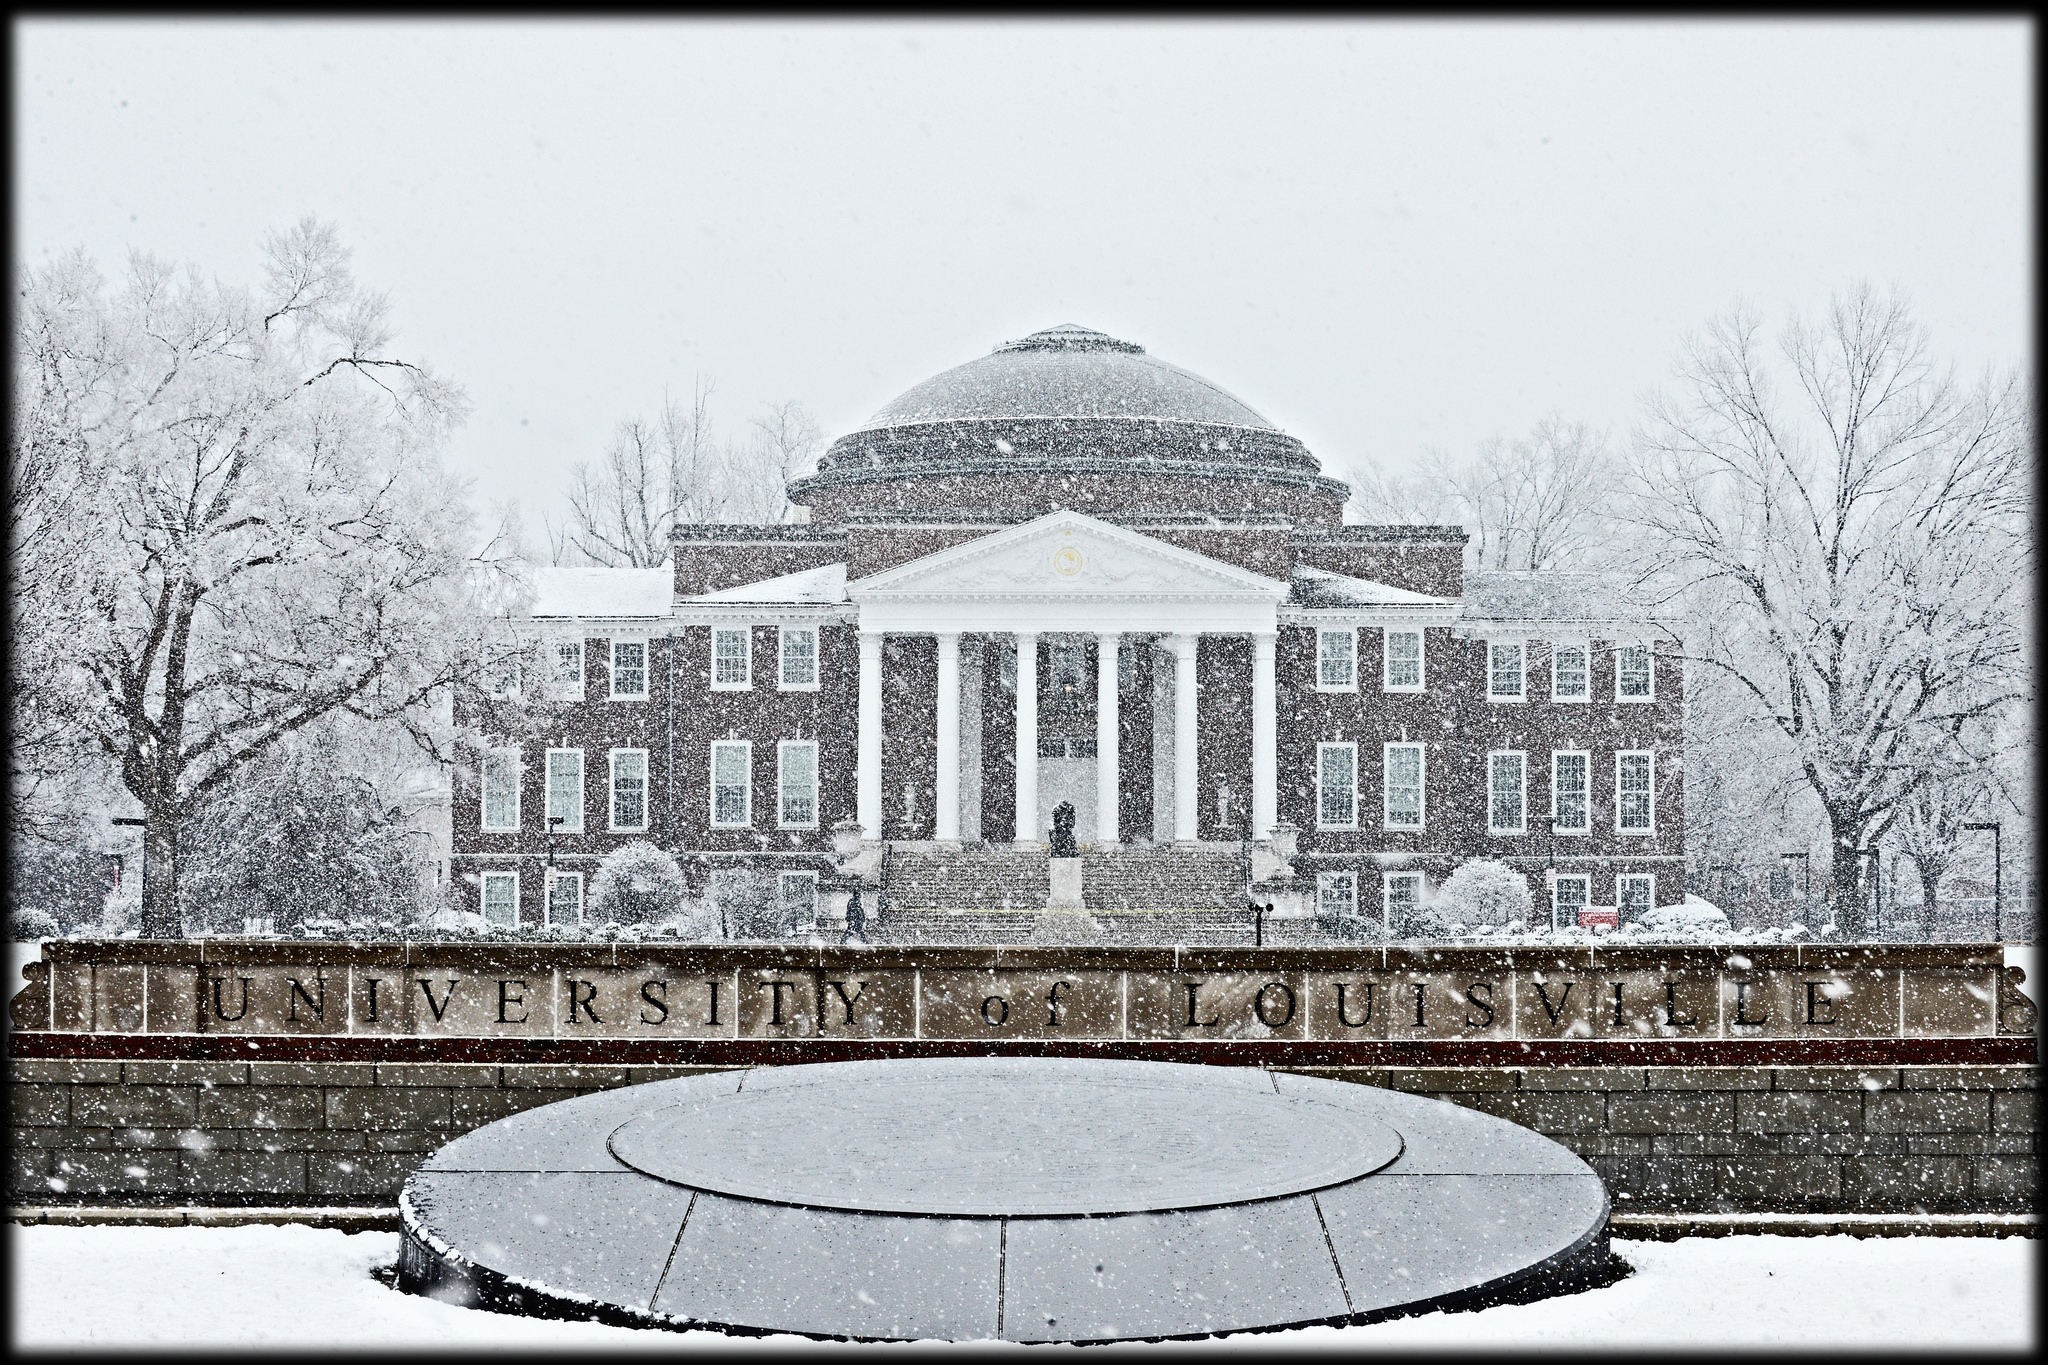 Grawemeyer Hall in winter